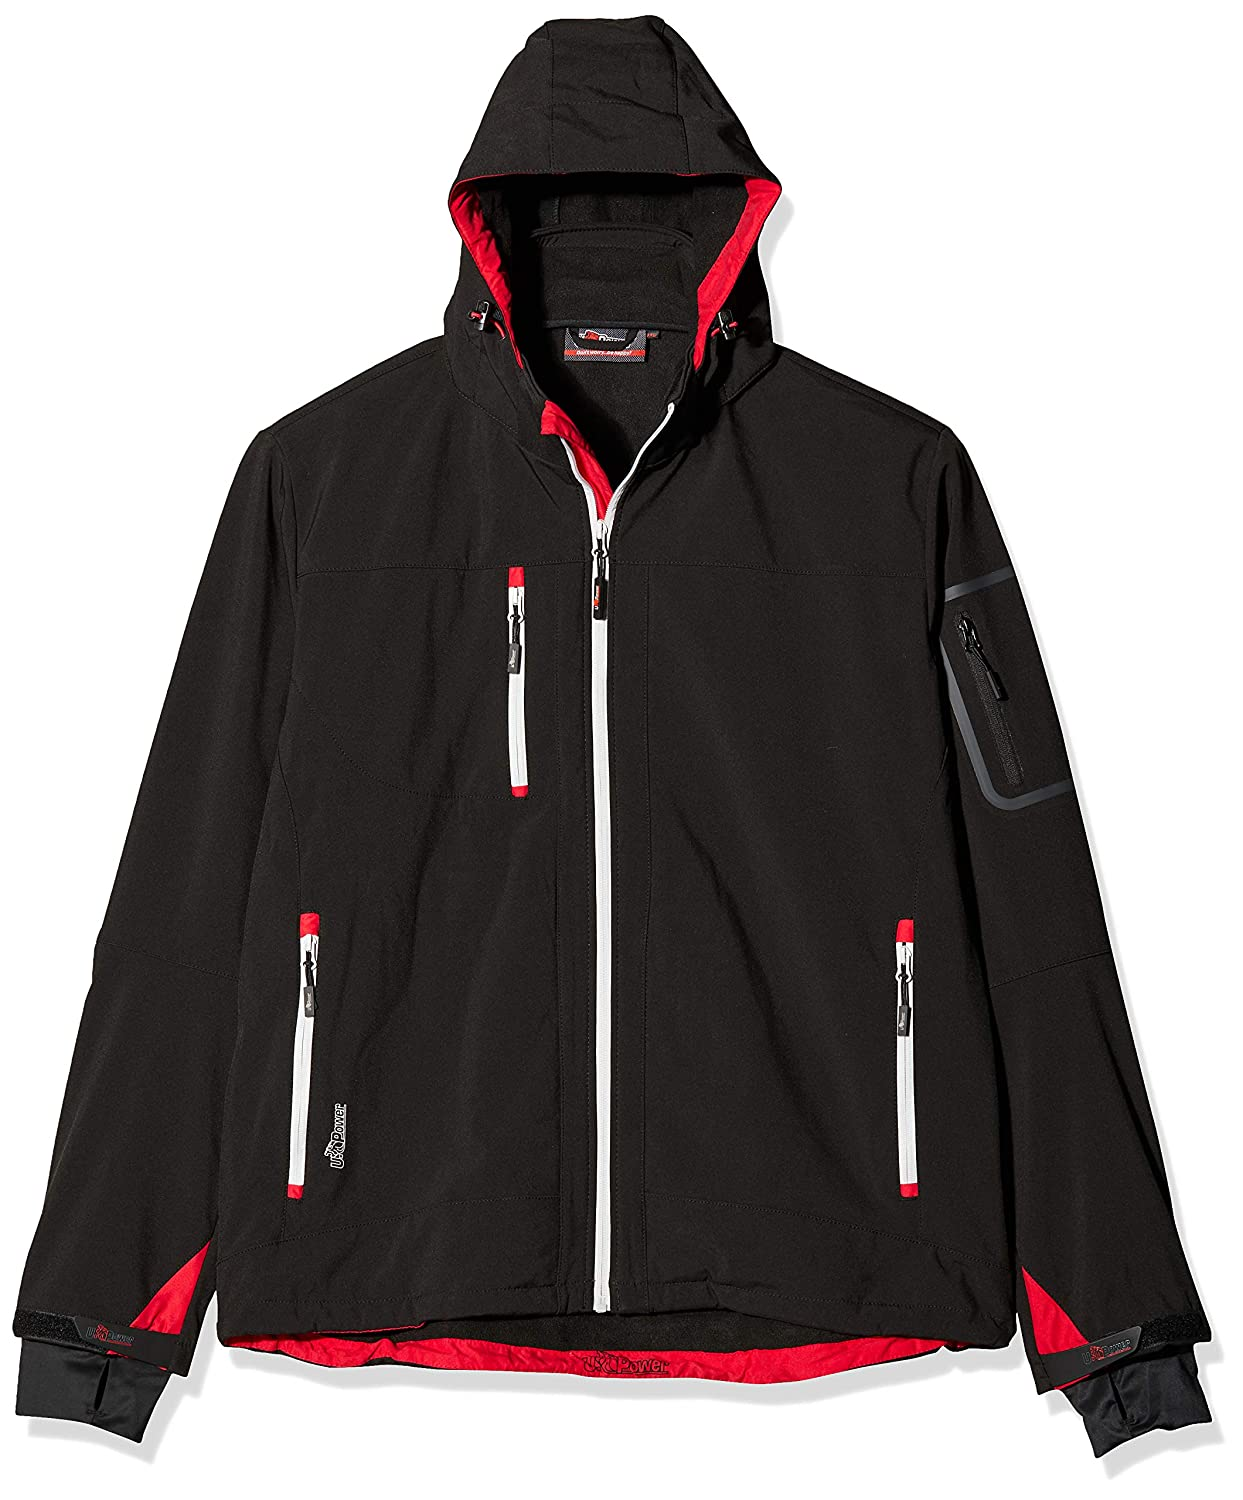 U POWER GIACCA METROPOLIS IN SOFT SHELL, COLORE: Black